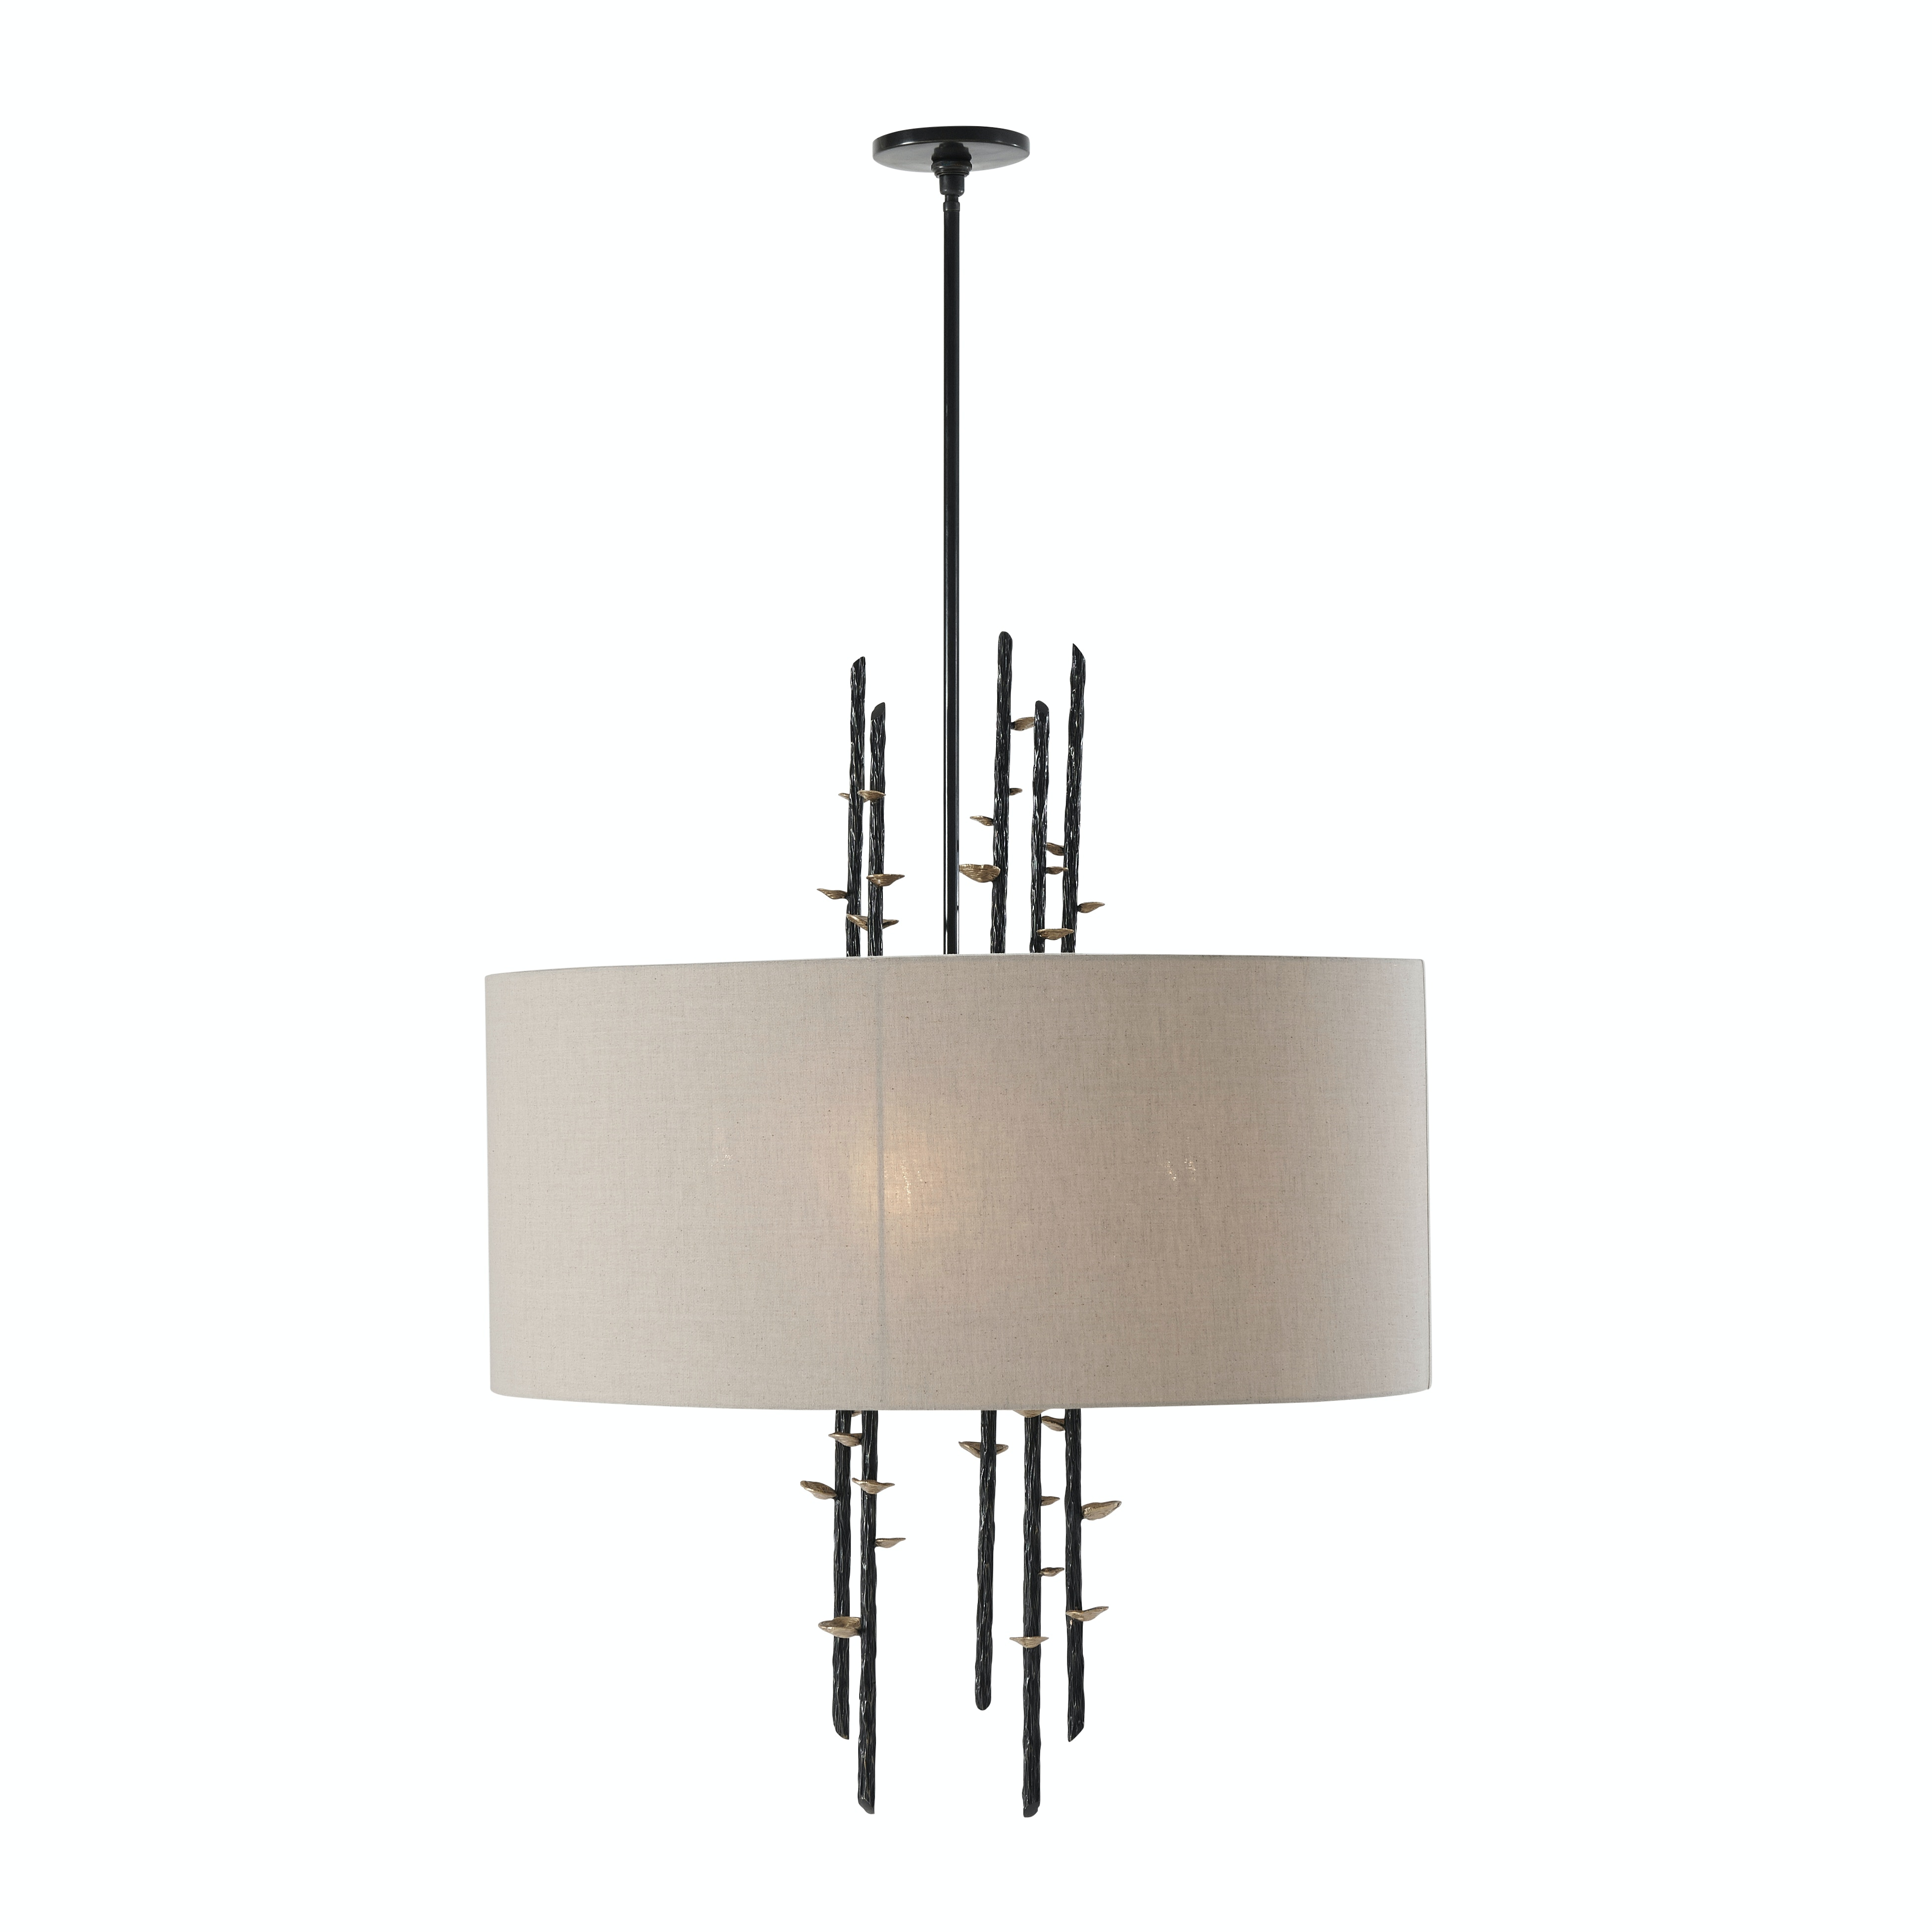 Theodore Alexander Furniture Vale Chandelier 2321-100  sc 1 st  Goodu0027s Home Furnishings & Theodore Alexander Furniture 2321-100 Lamps and Lighting Vale Chandelier